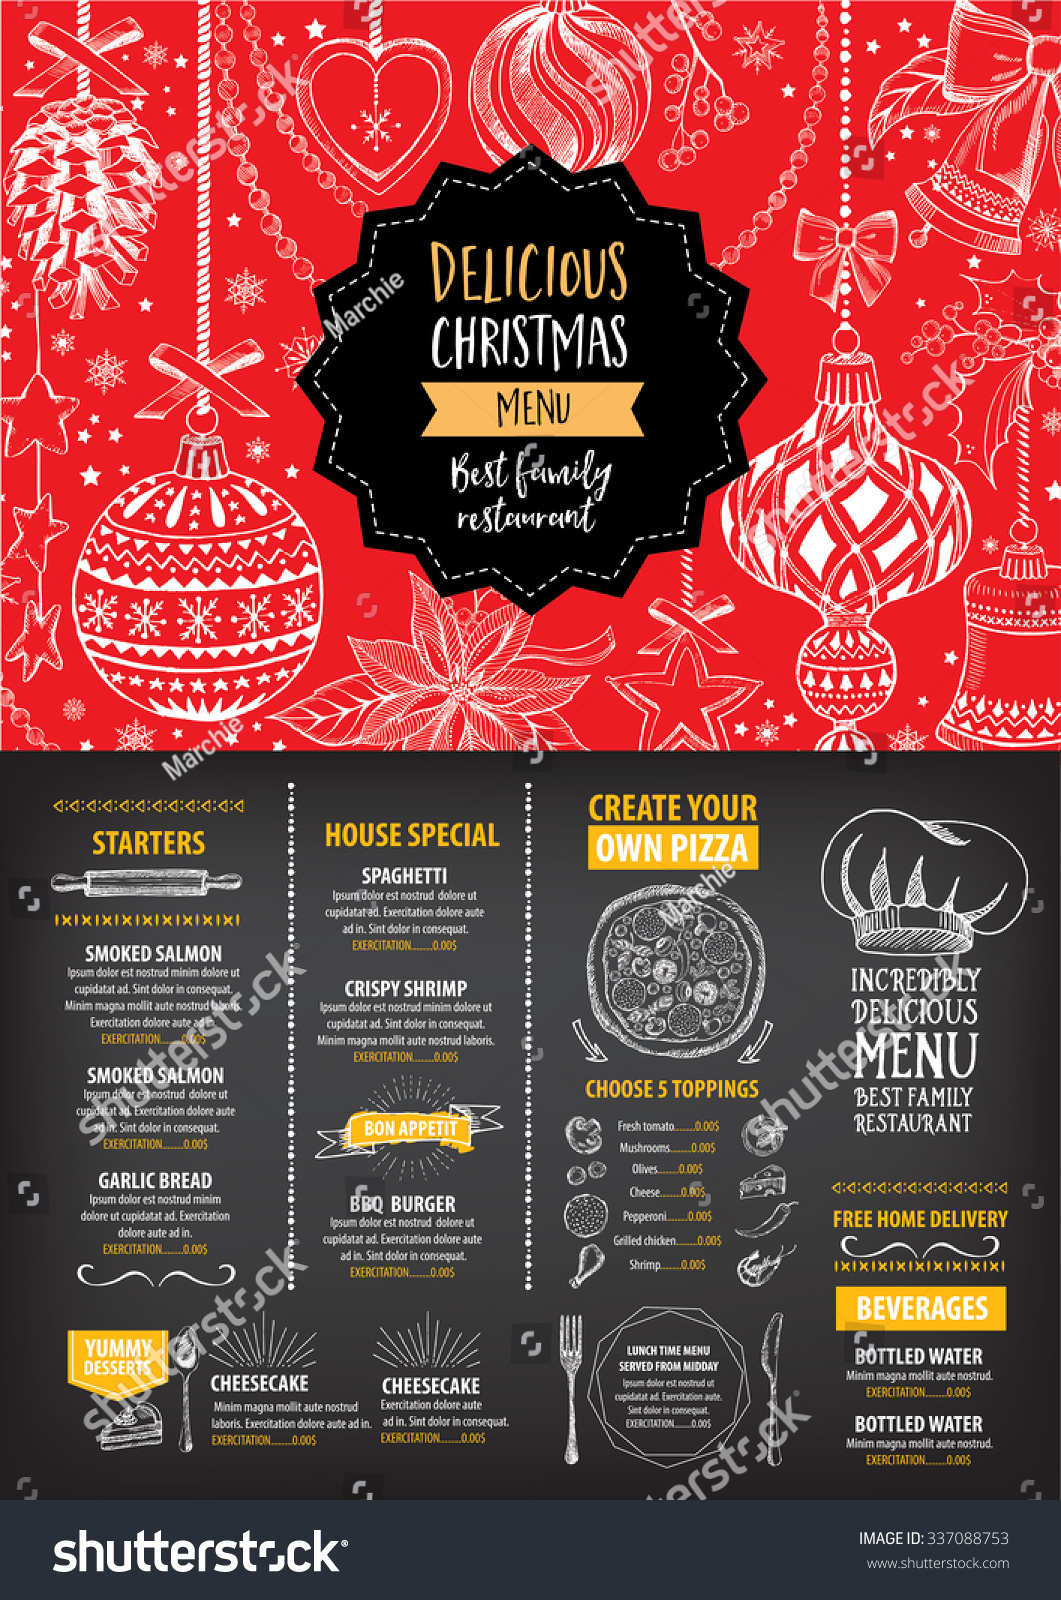 Vector Christmas Restaurant Brochure, Menu Design. Vector Holiday Template  With Xmas Hand Drawn